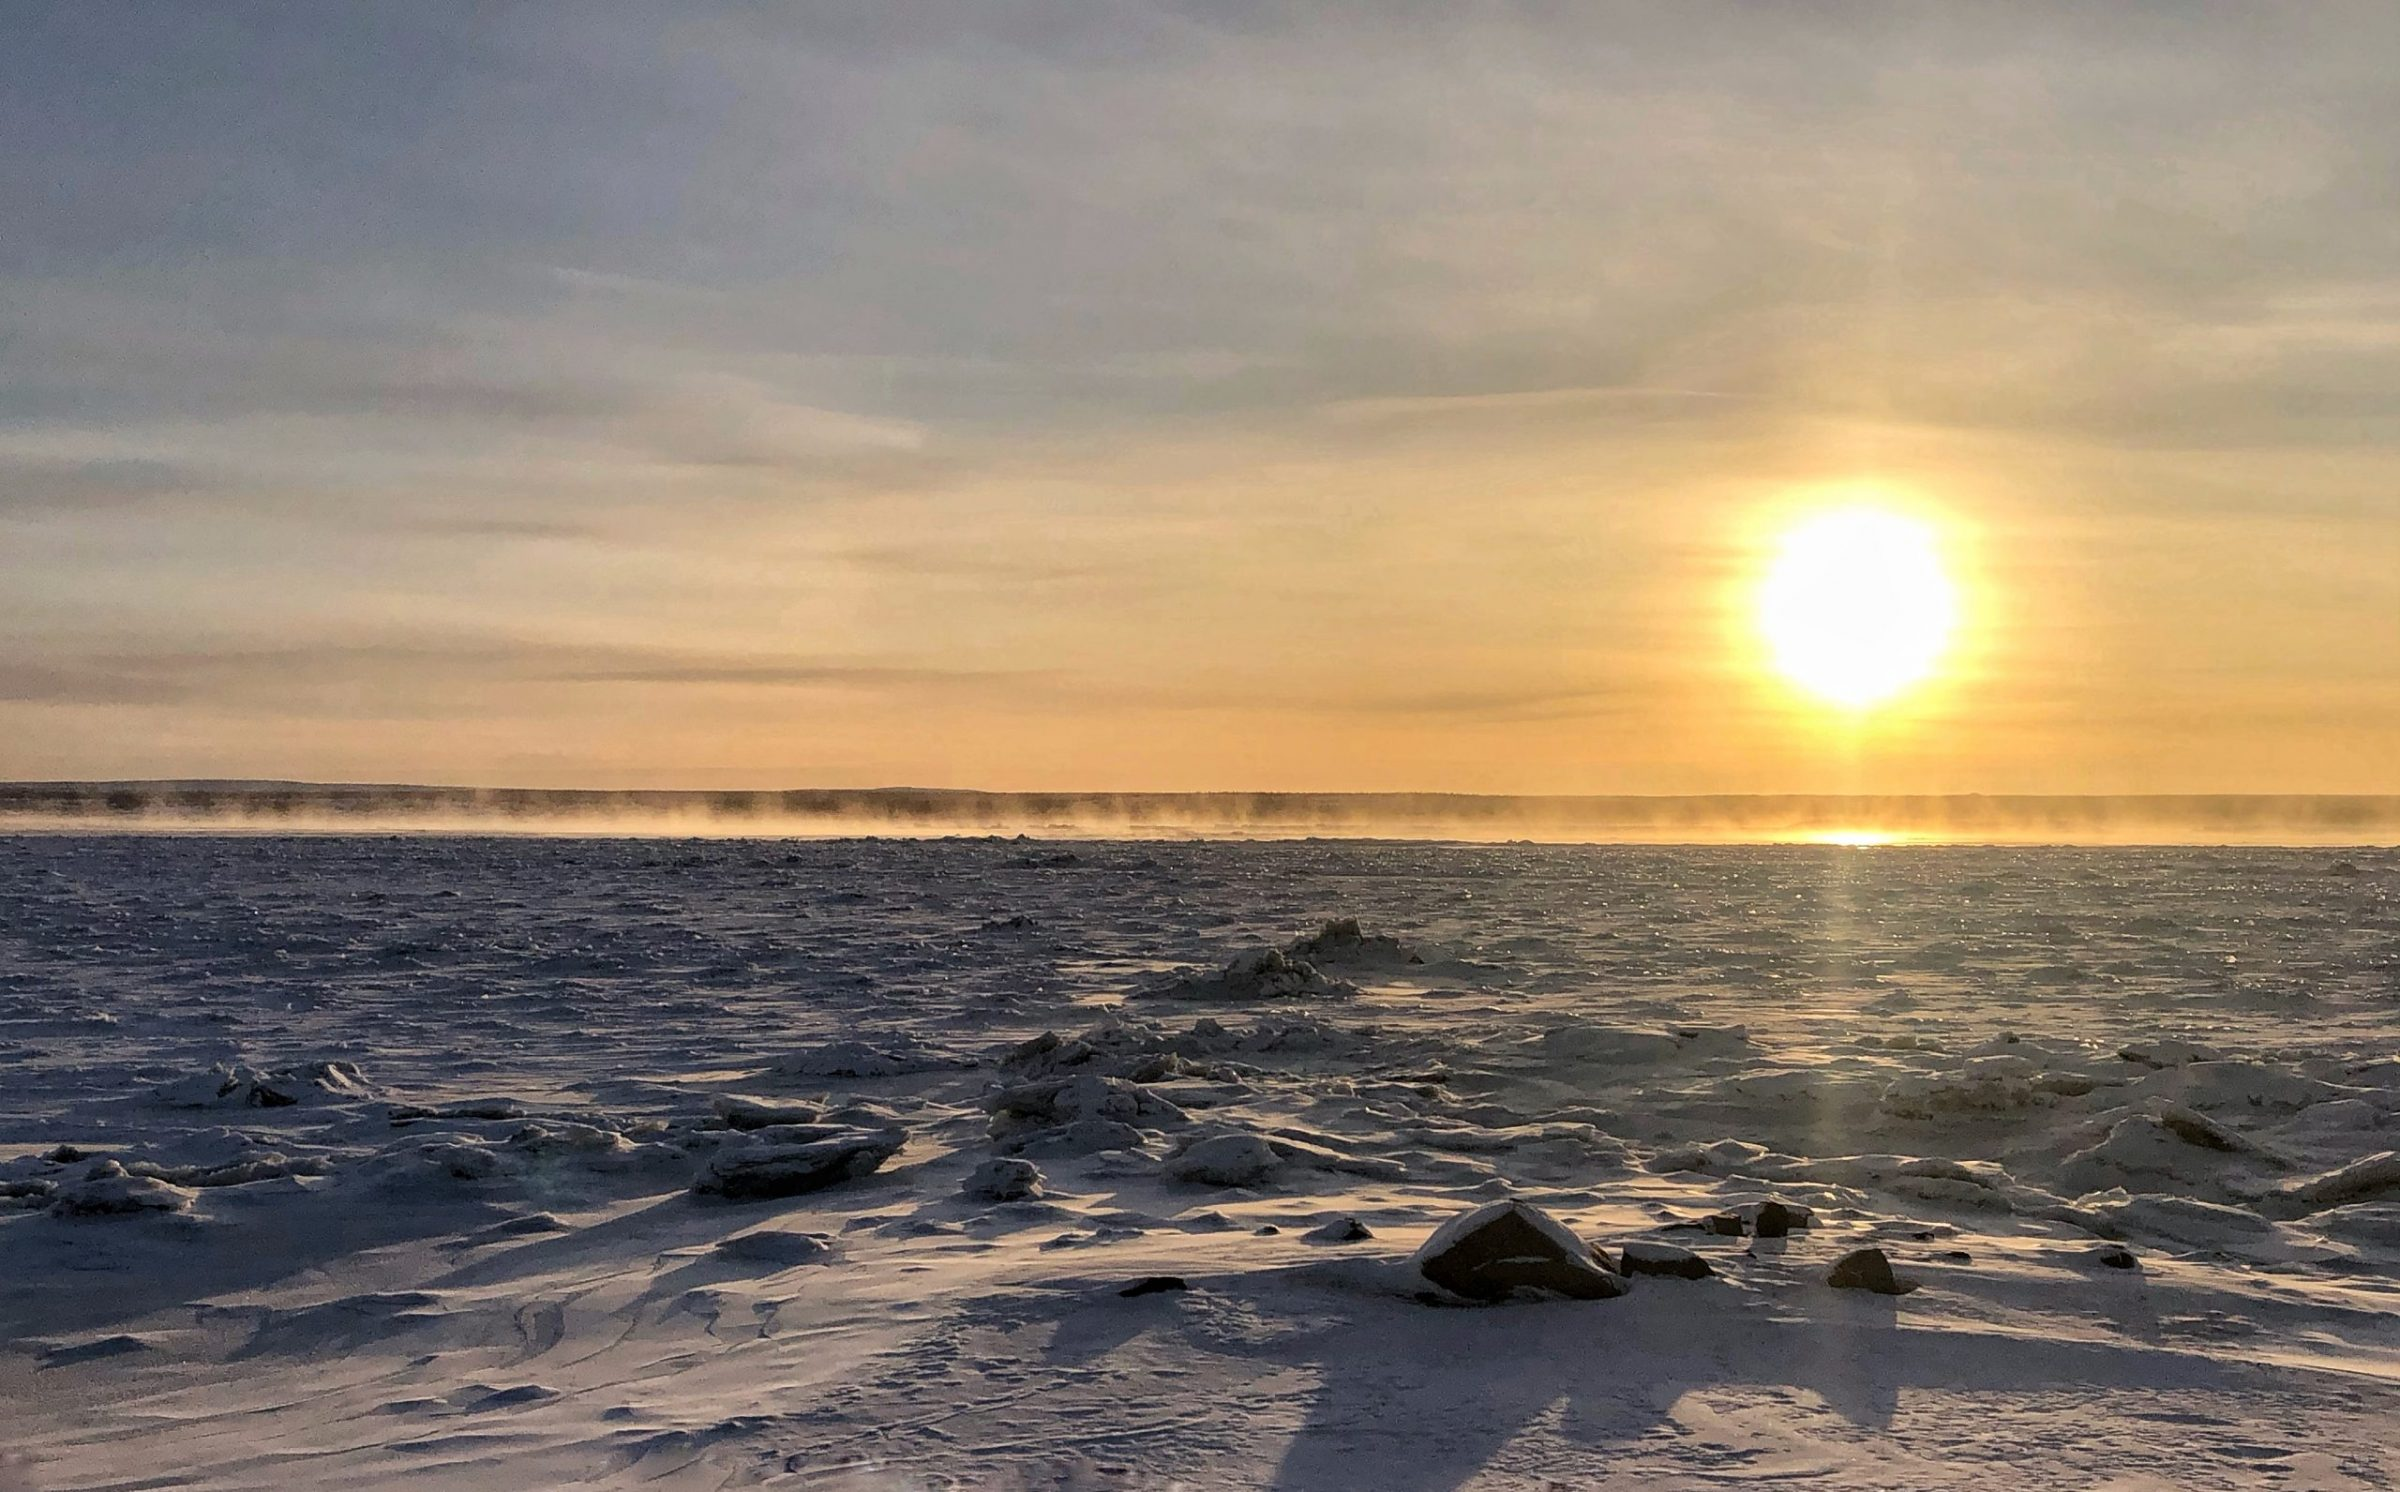 Water vapour rises off the freezing Koksoak River near Kuujjuaq on the morning of Dec. 17. (Photo by Isabelle Dubois)